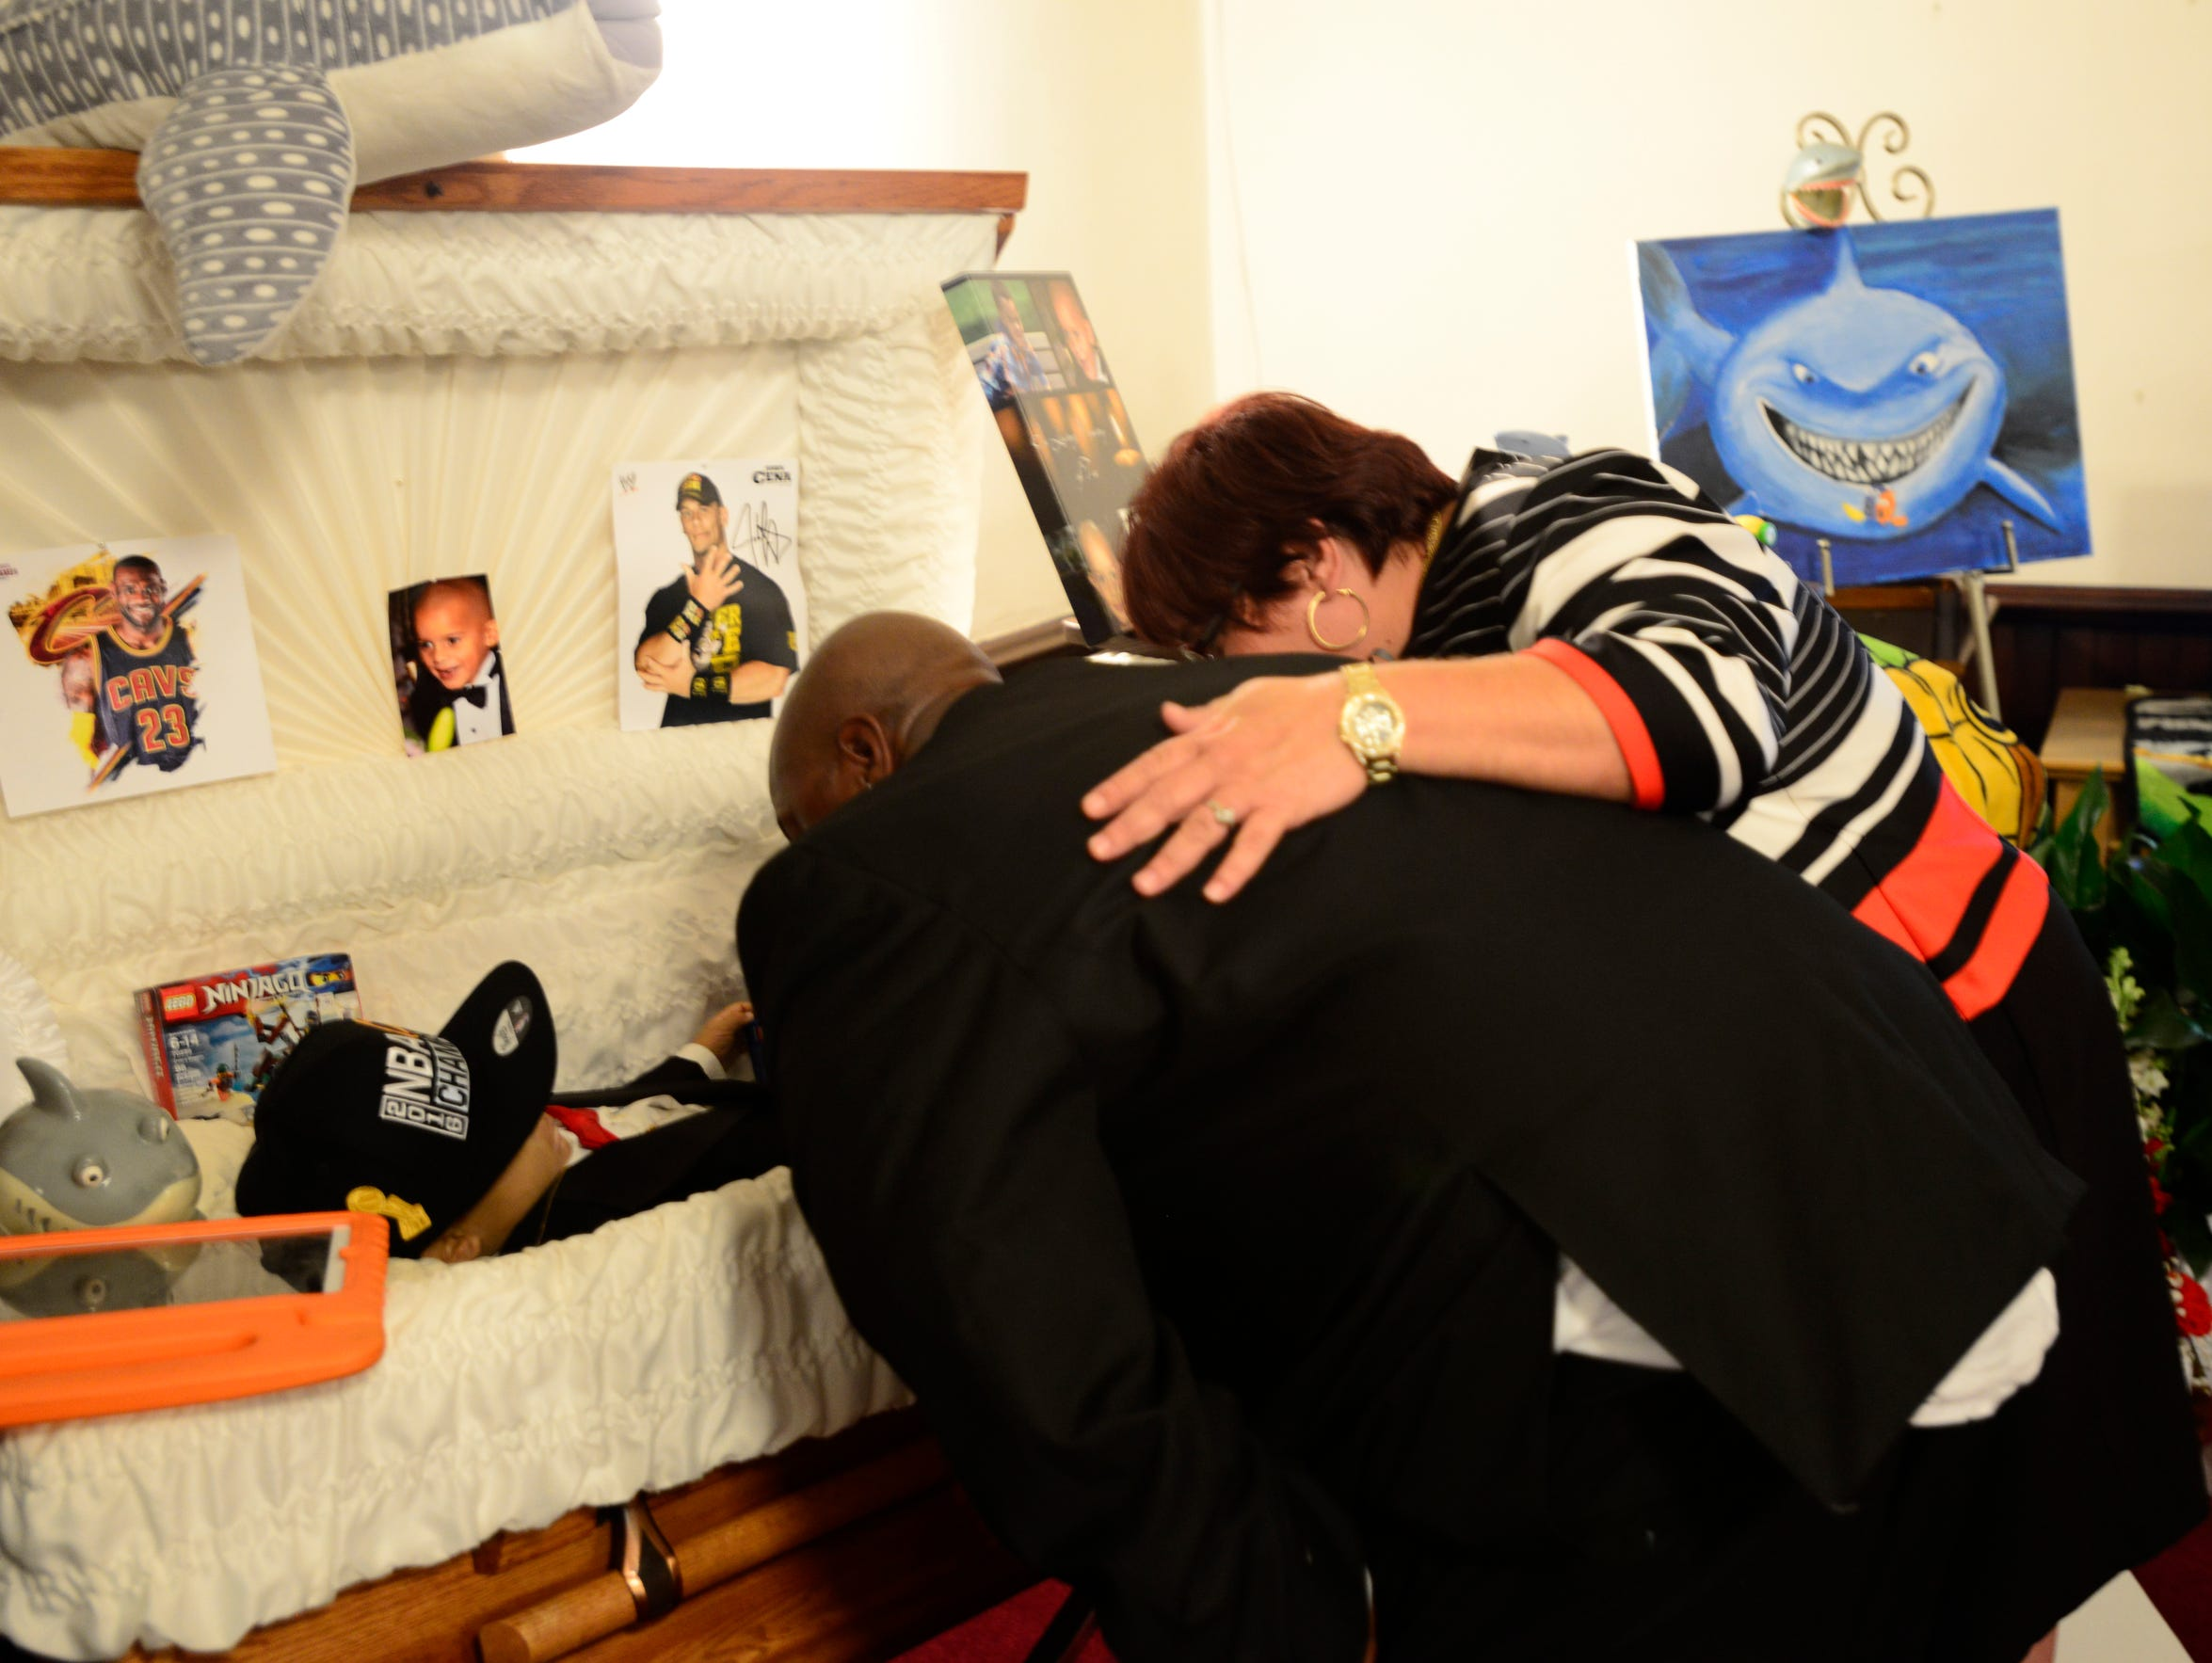 Alex Smith, left, and Brandy Lagasse say a final goodbye